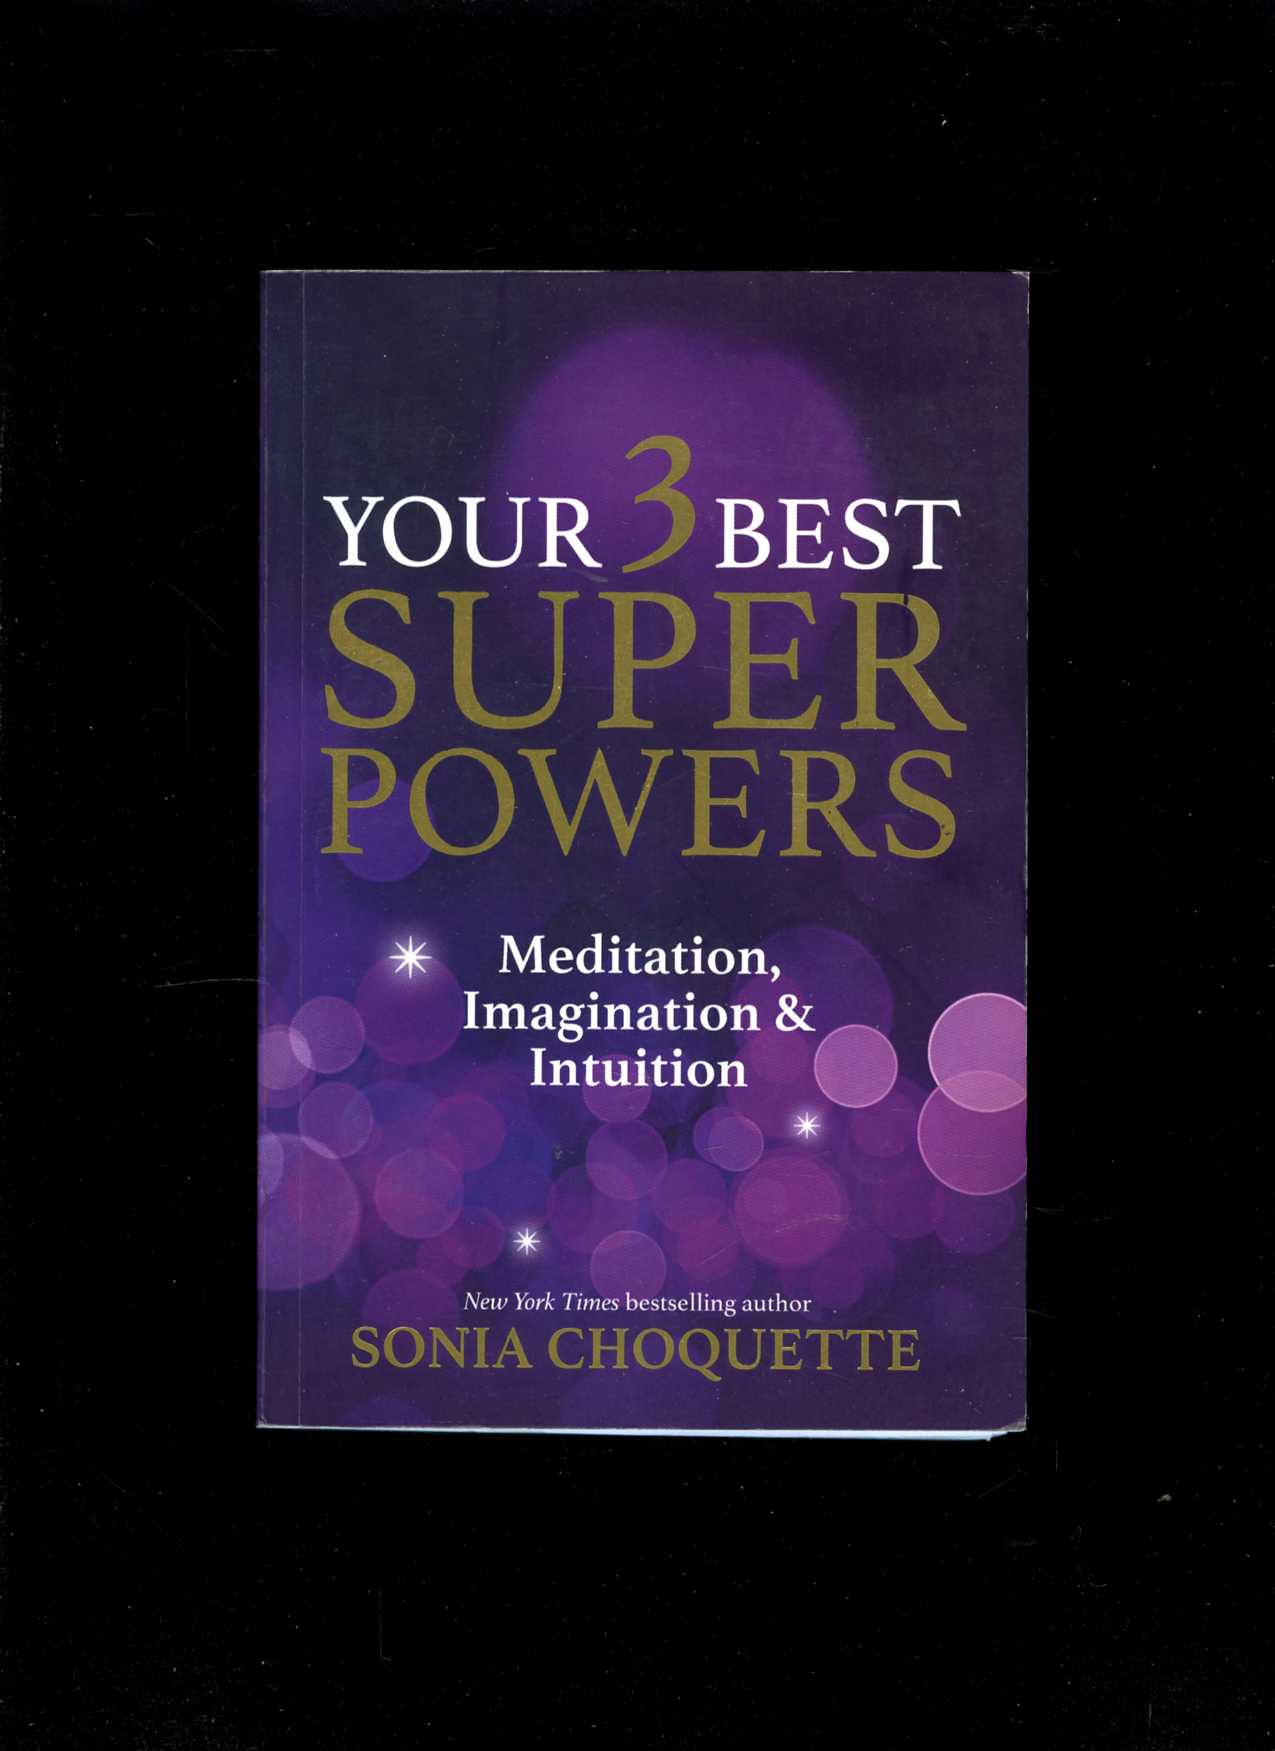 Your 3 Best Super Powers (Sonia Choquette)